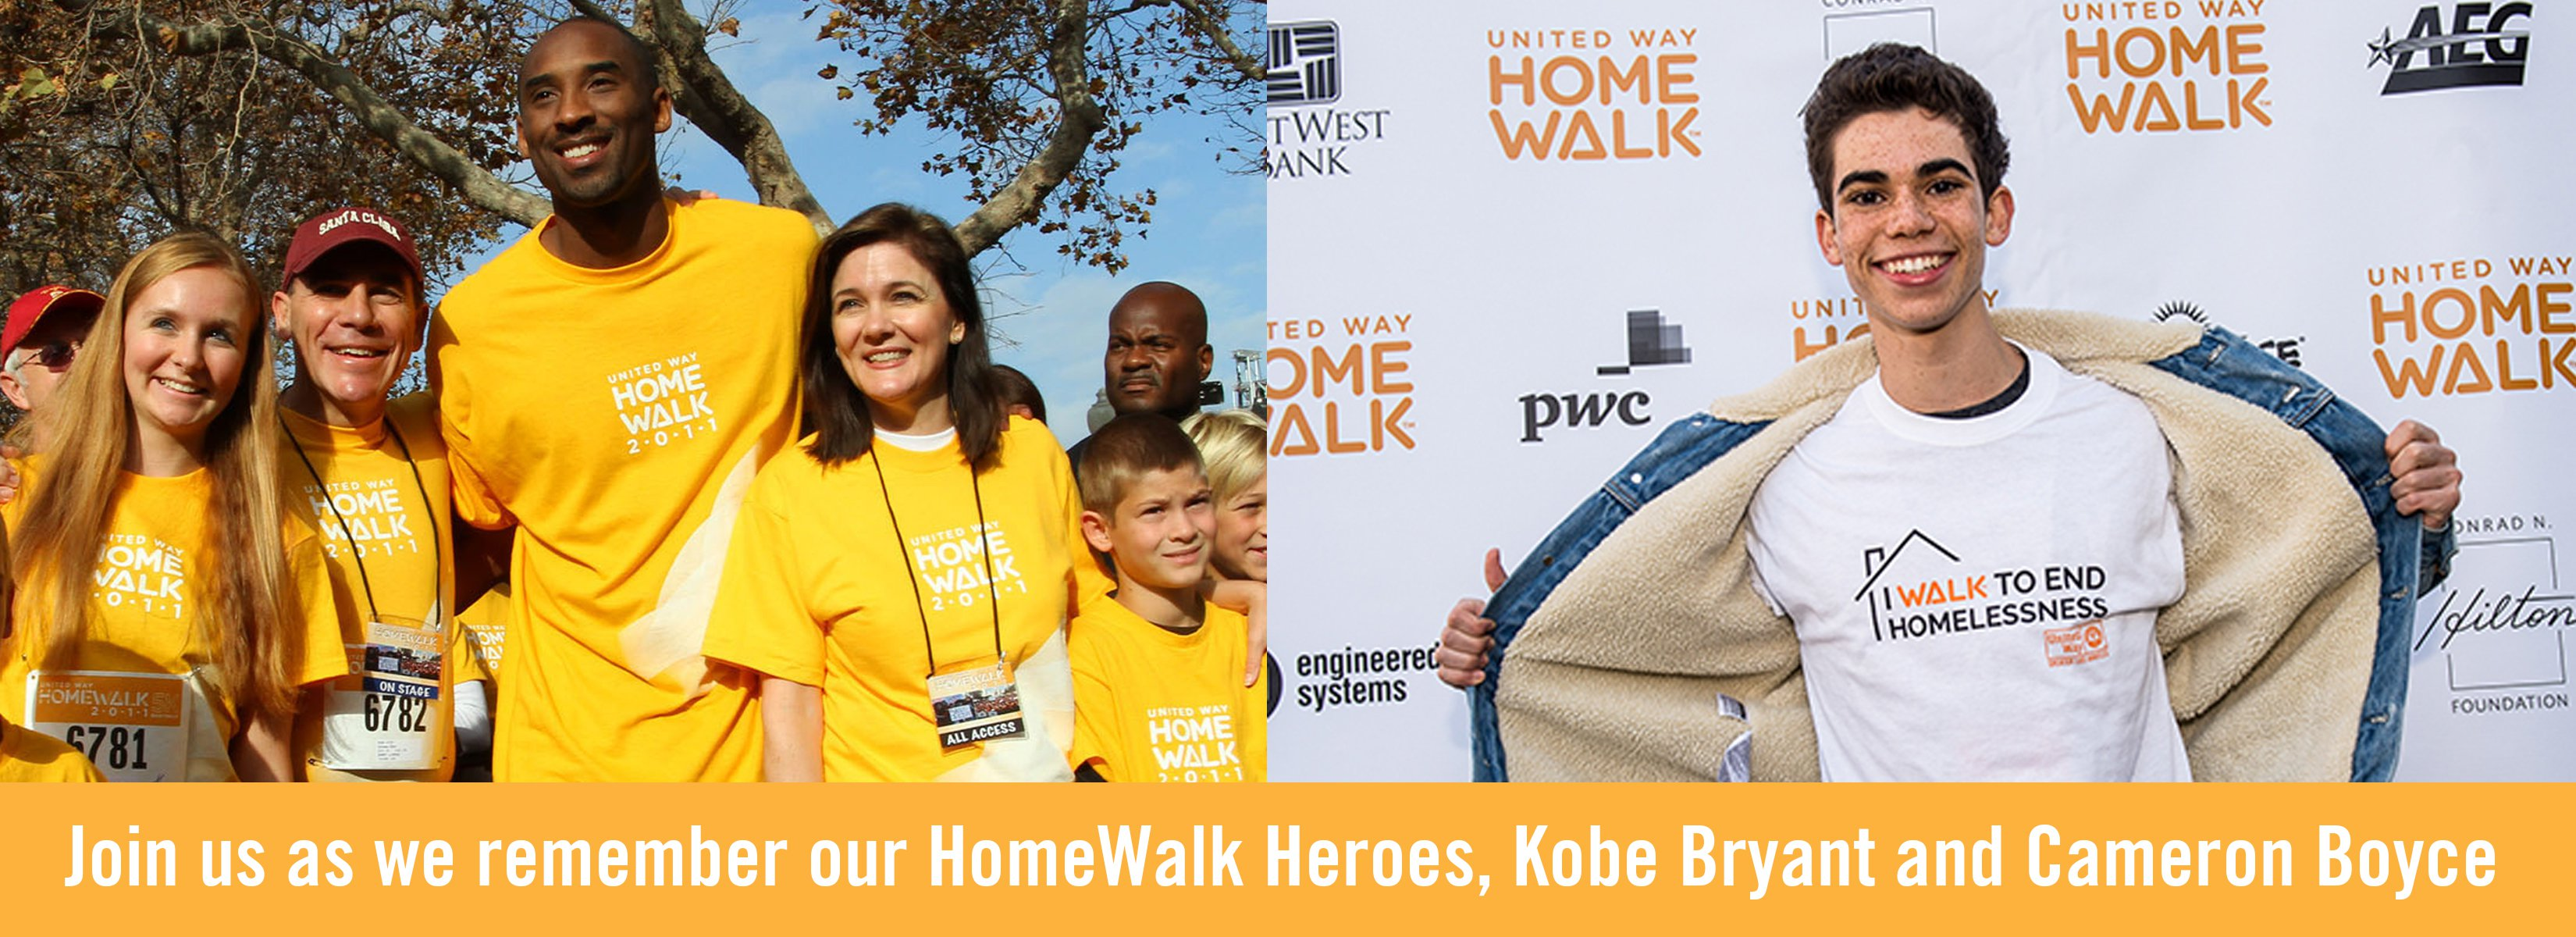 Save the date Homewalk to end homelessness 2020 on Saturday May 30th